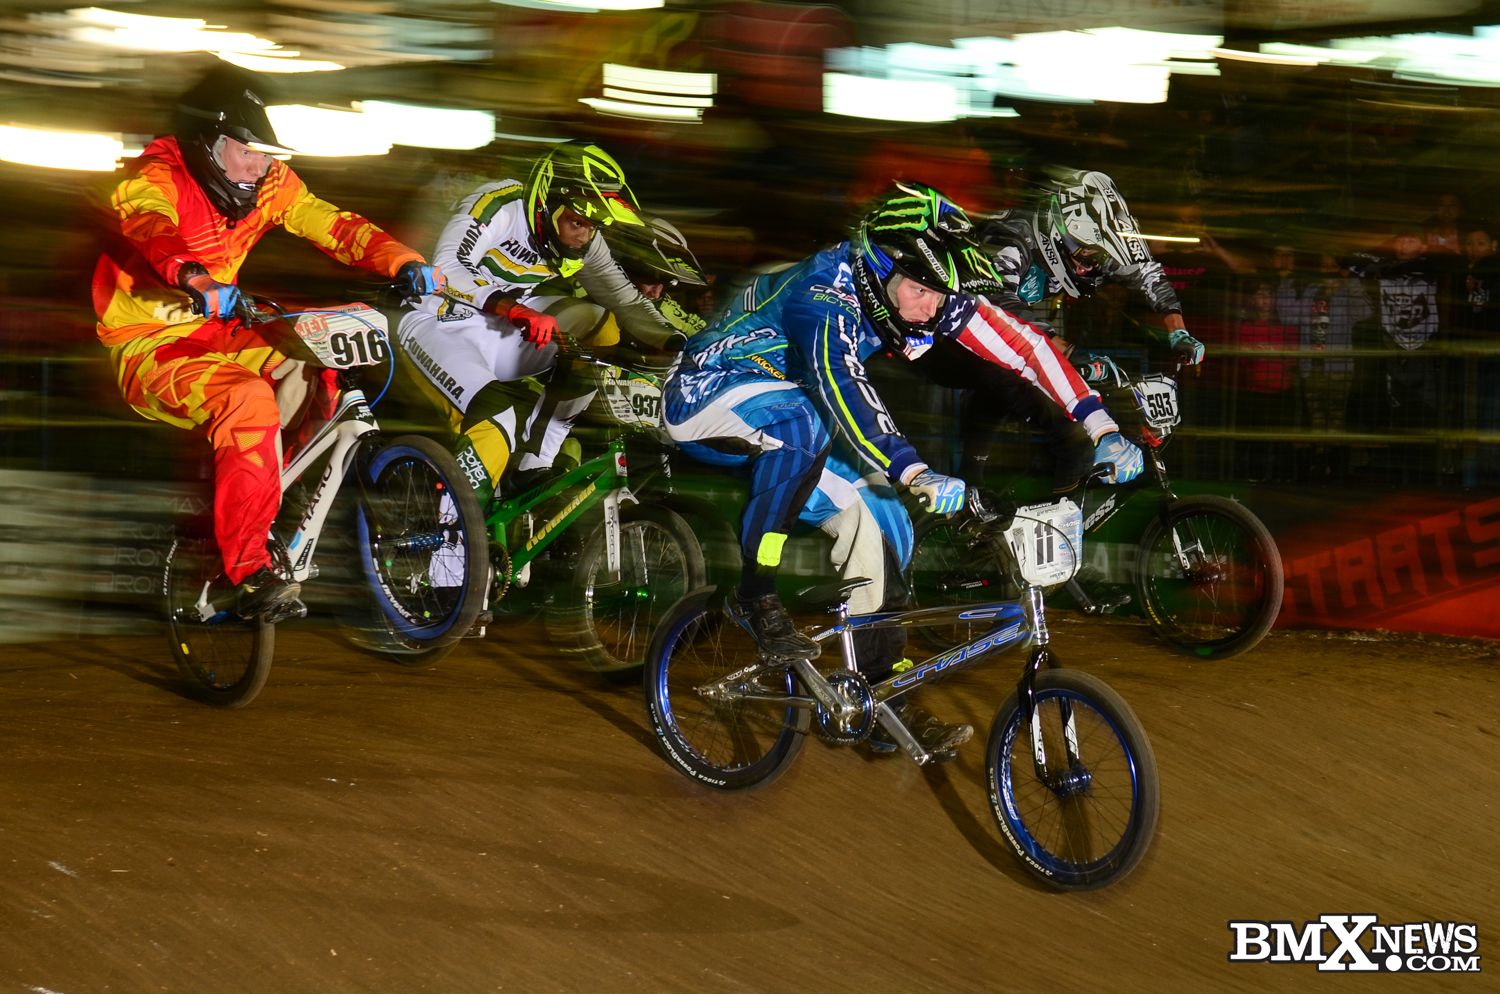 USA BMX Race of Champions – Connor Fields finishes 2nd